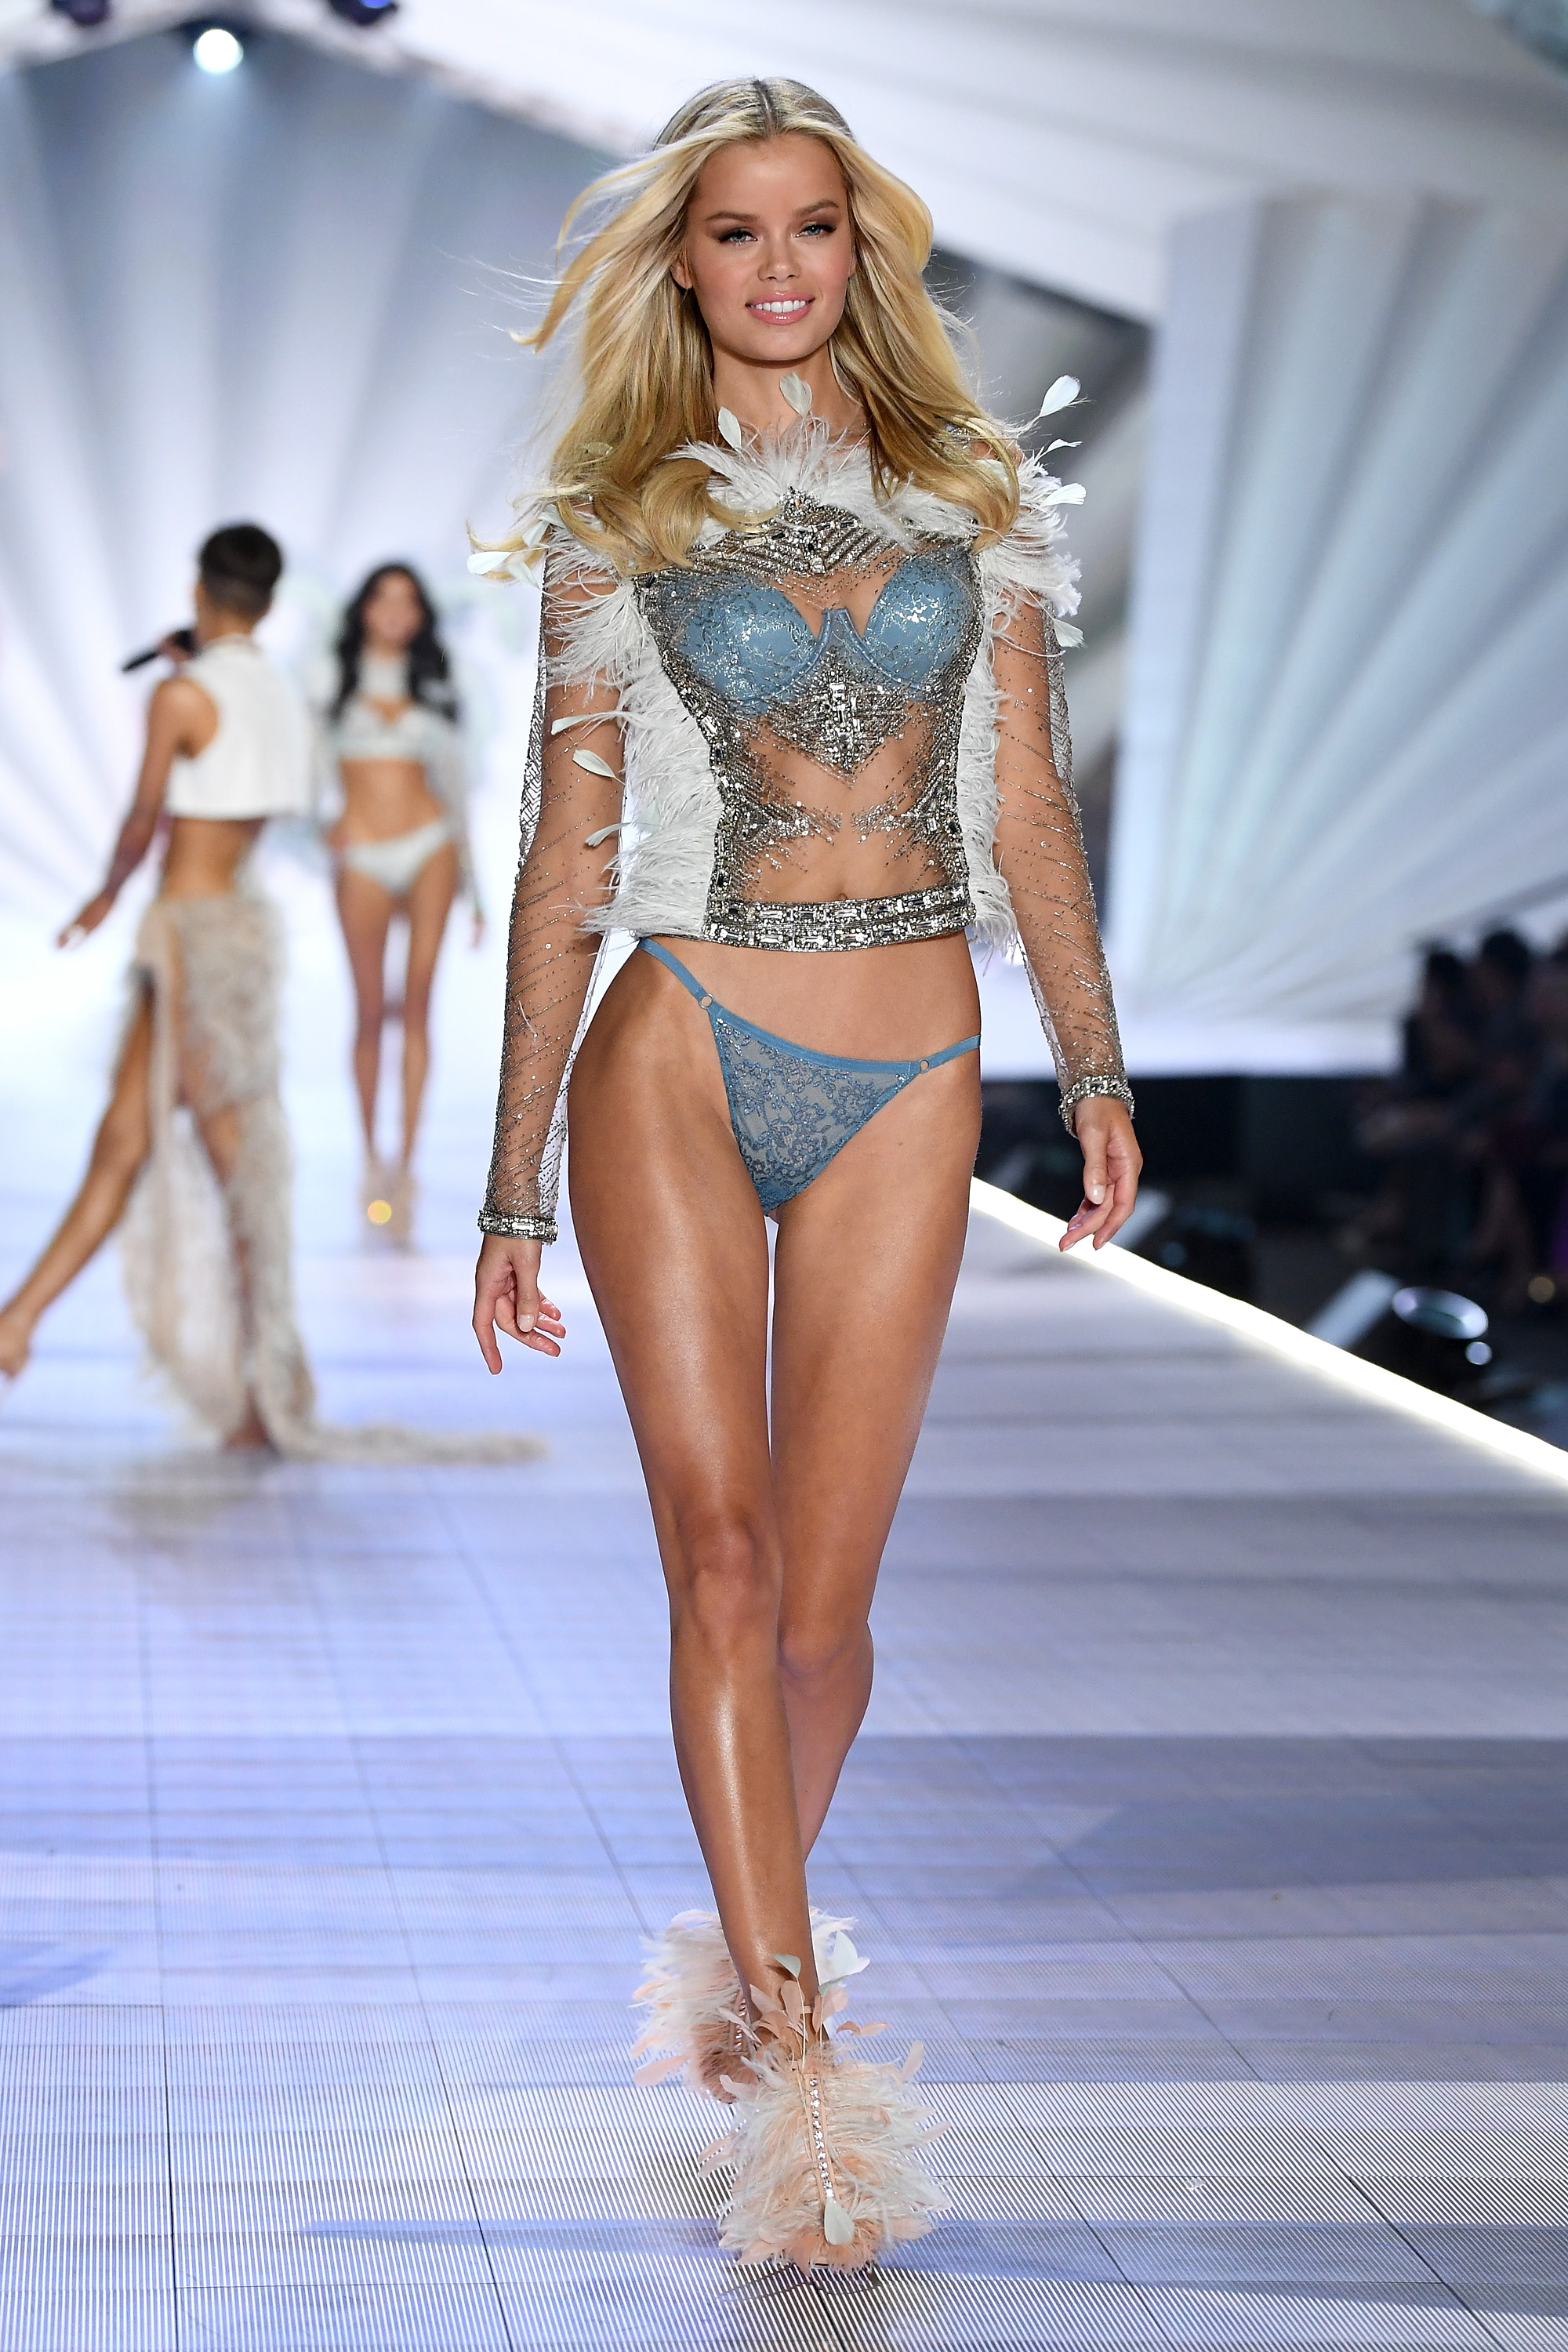 Frida Aasen walks the runway during the 2018 Victoria's Secret Fashion Show at Pier 94 on November 8, 2018, in New York City. (Getty Images)